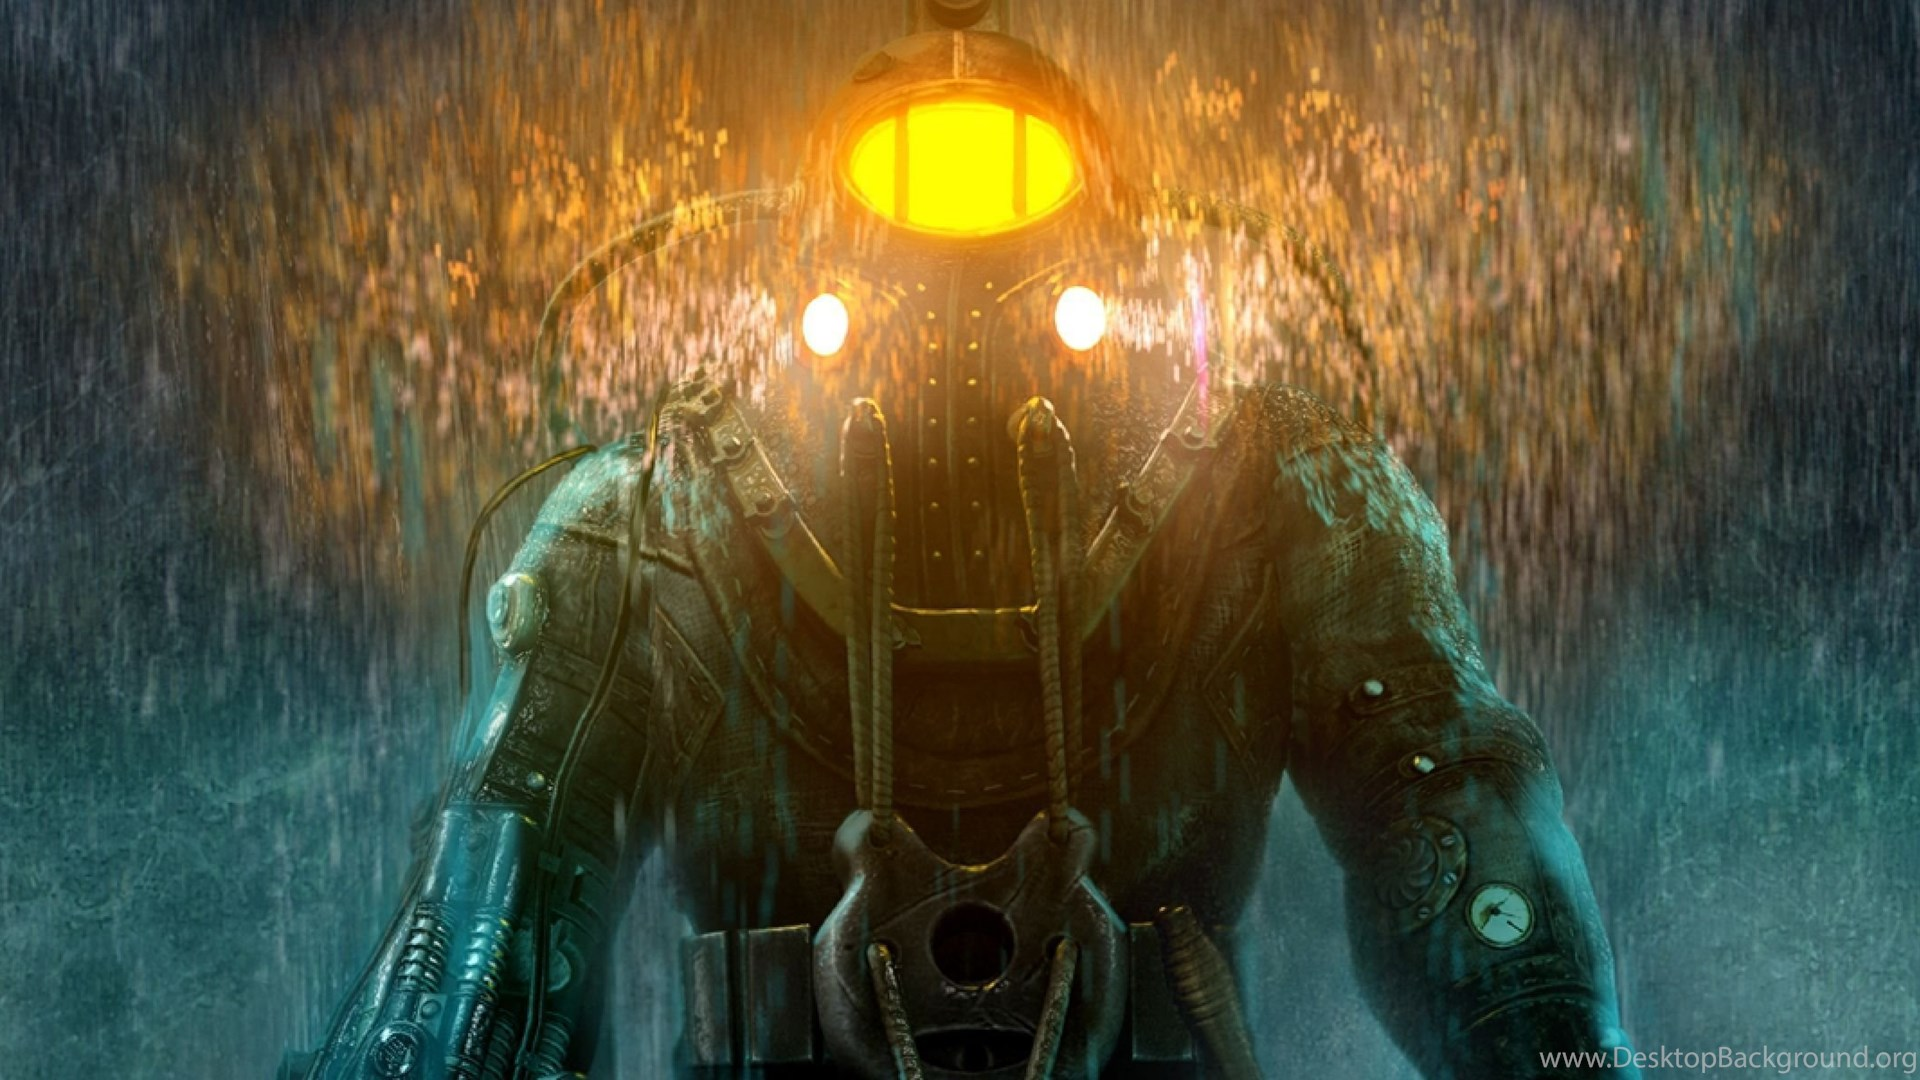 Download Wallpapers 3840x1200 Bioshock Big Daddy Little Sister